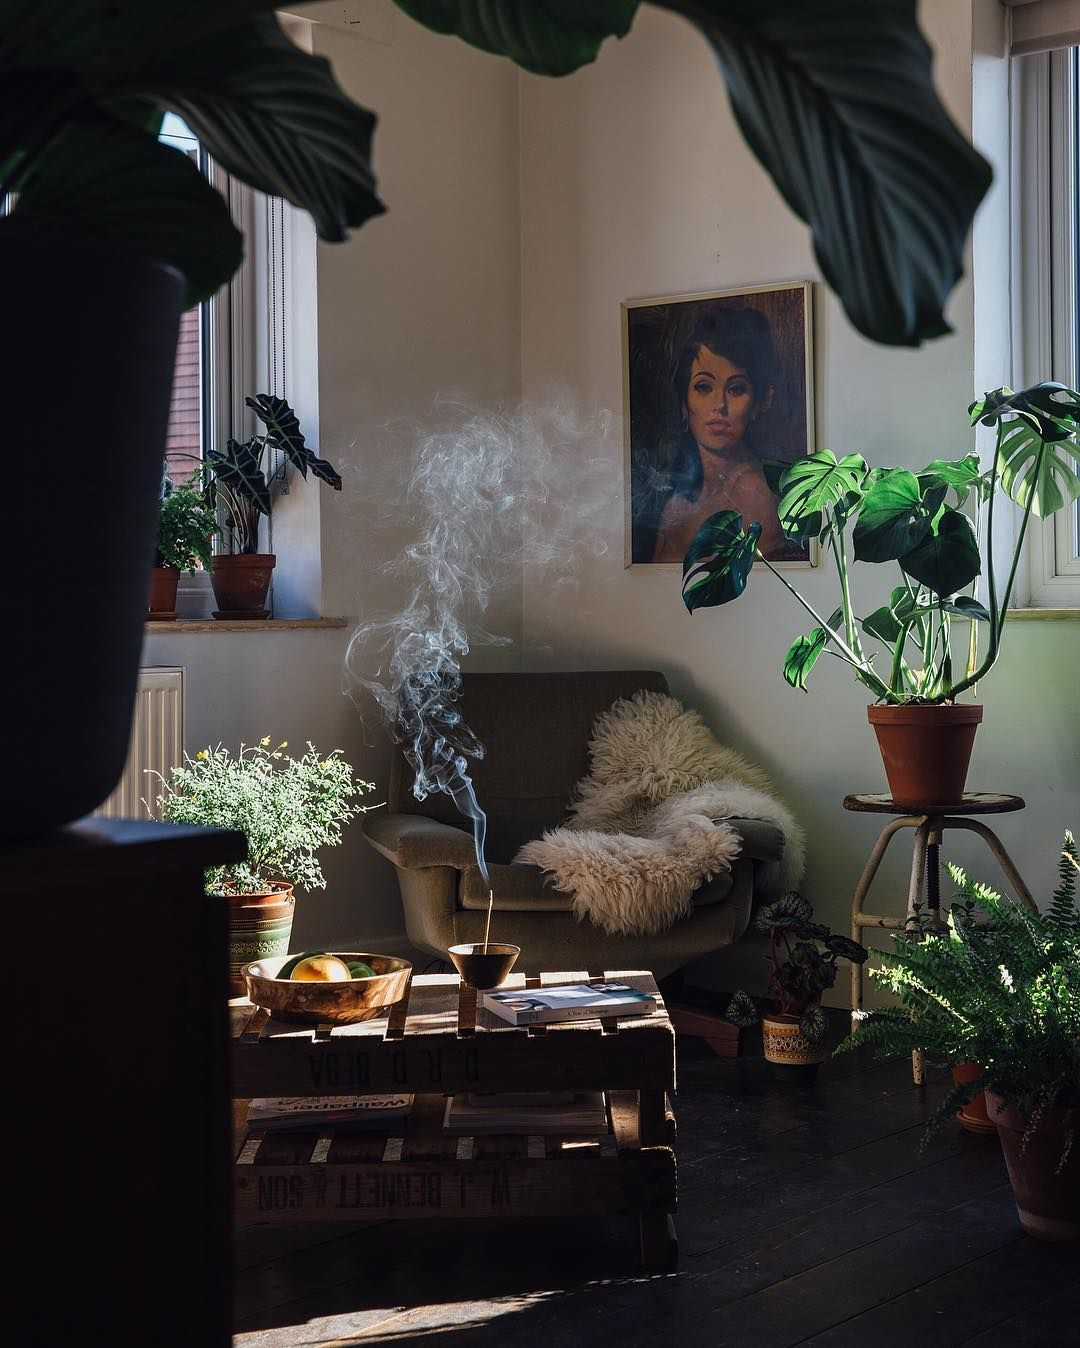 Being surrounded by plants brings a positive and creative energy to